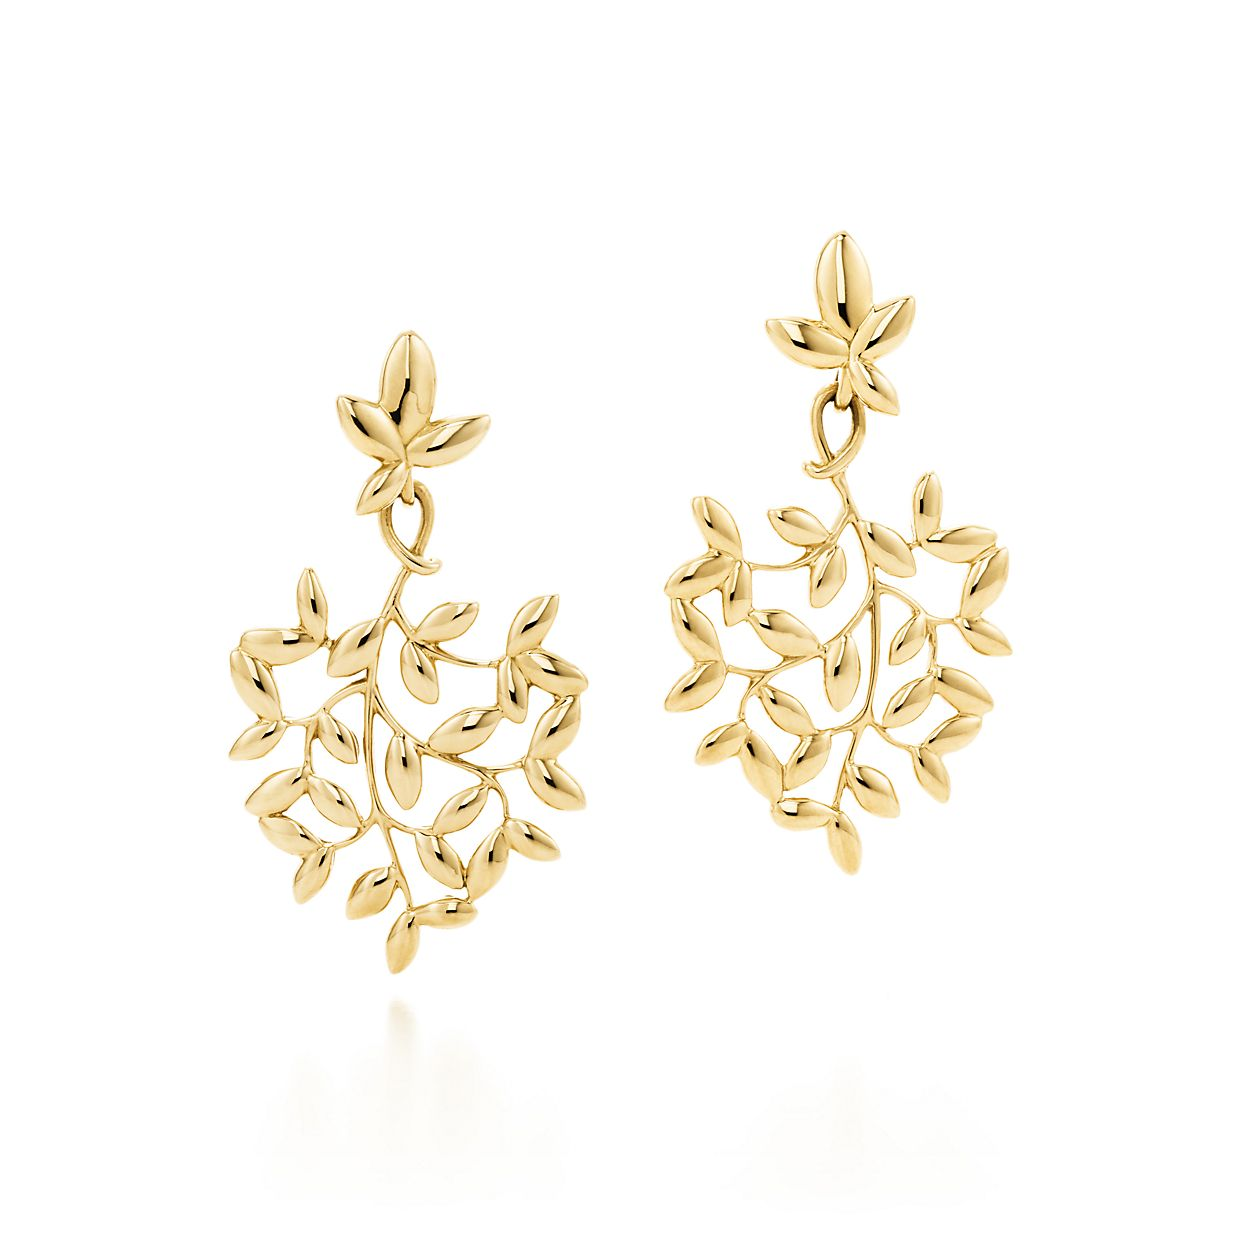 Paloma Picasso® Olive Leaf drop earrings in 18k gold, small ...